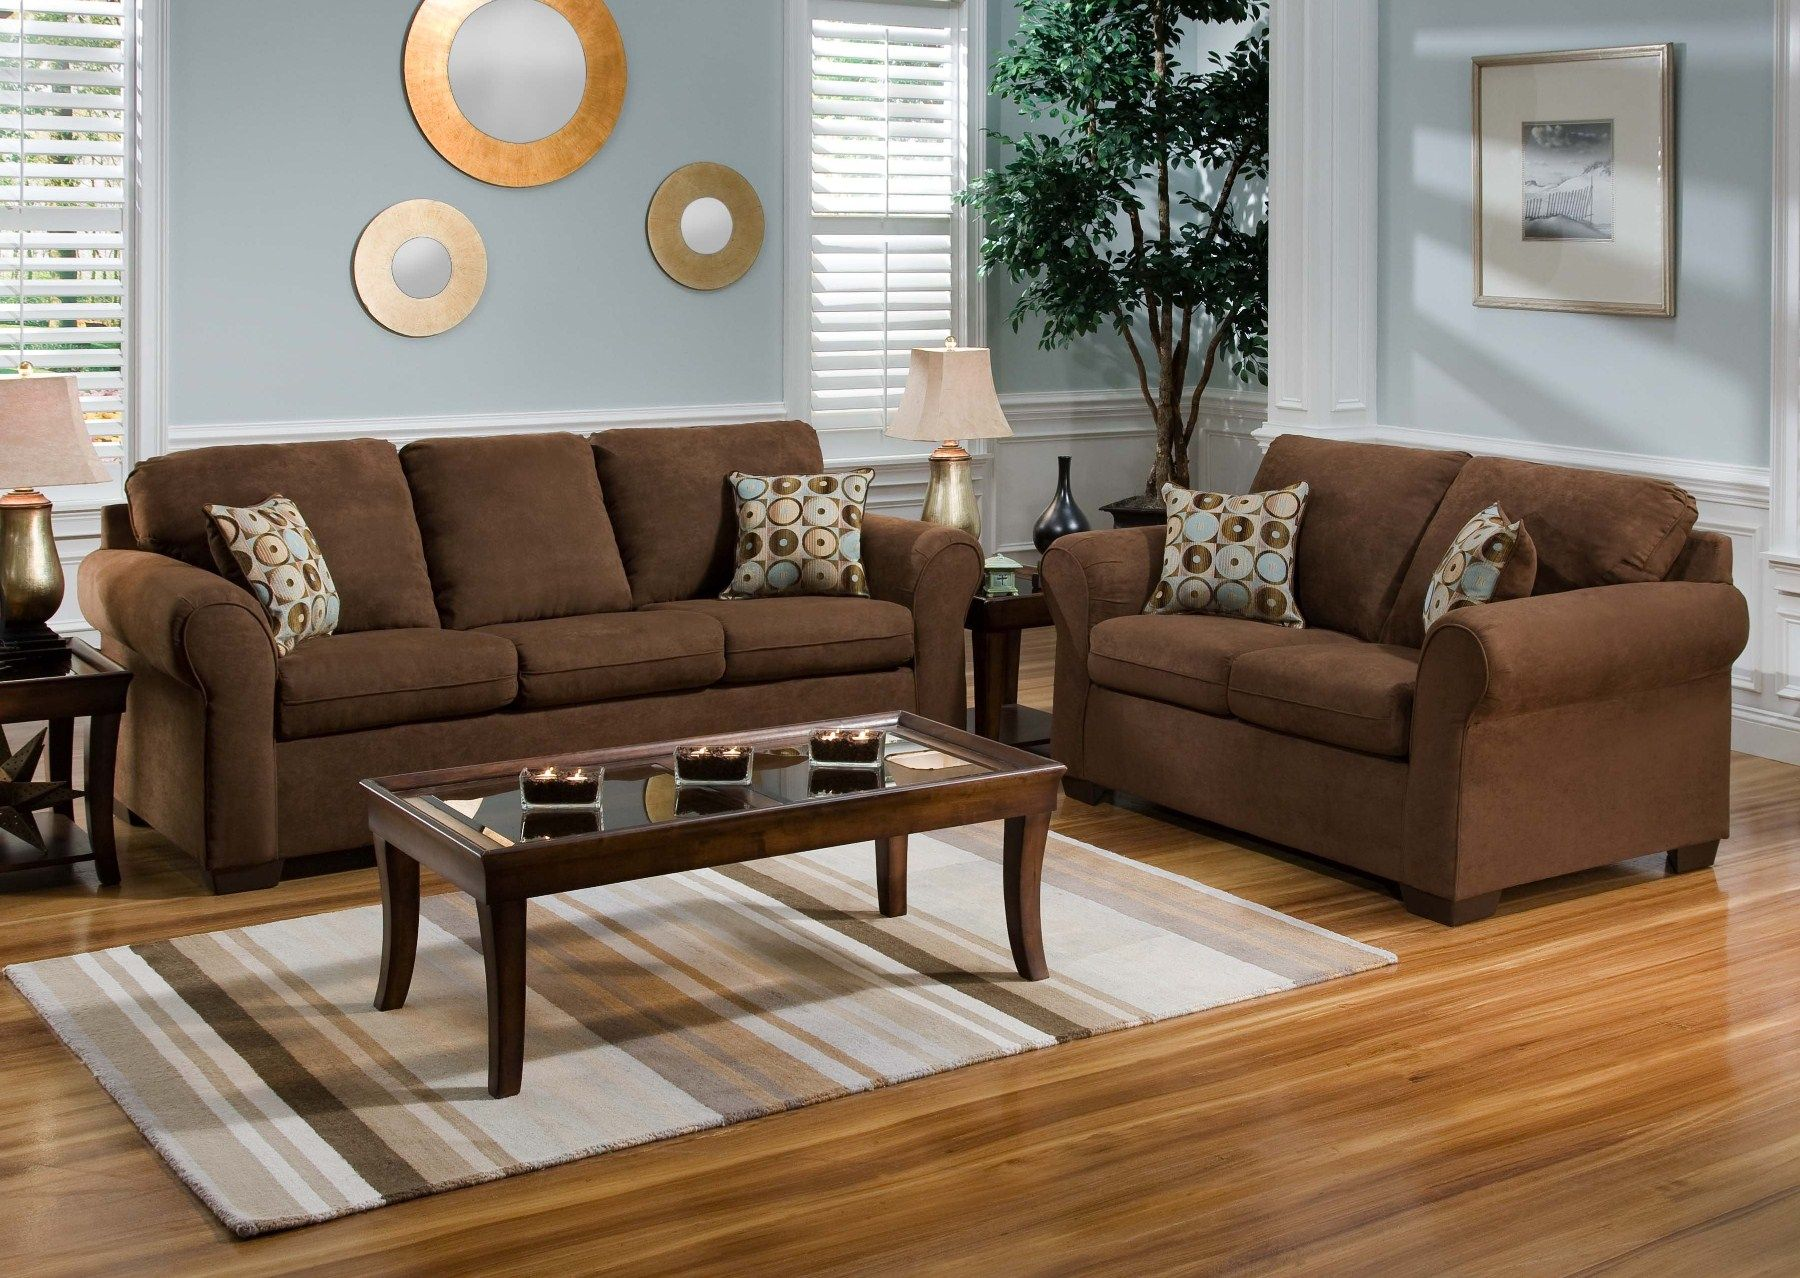 Living Room Warm Color Schemes With Chocolate Brown Couch And Rectangle Glass Coffee